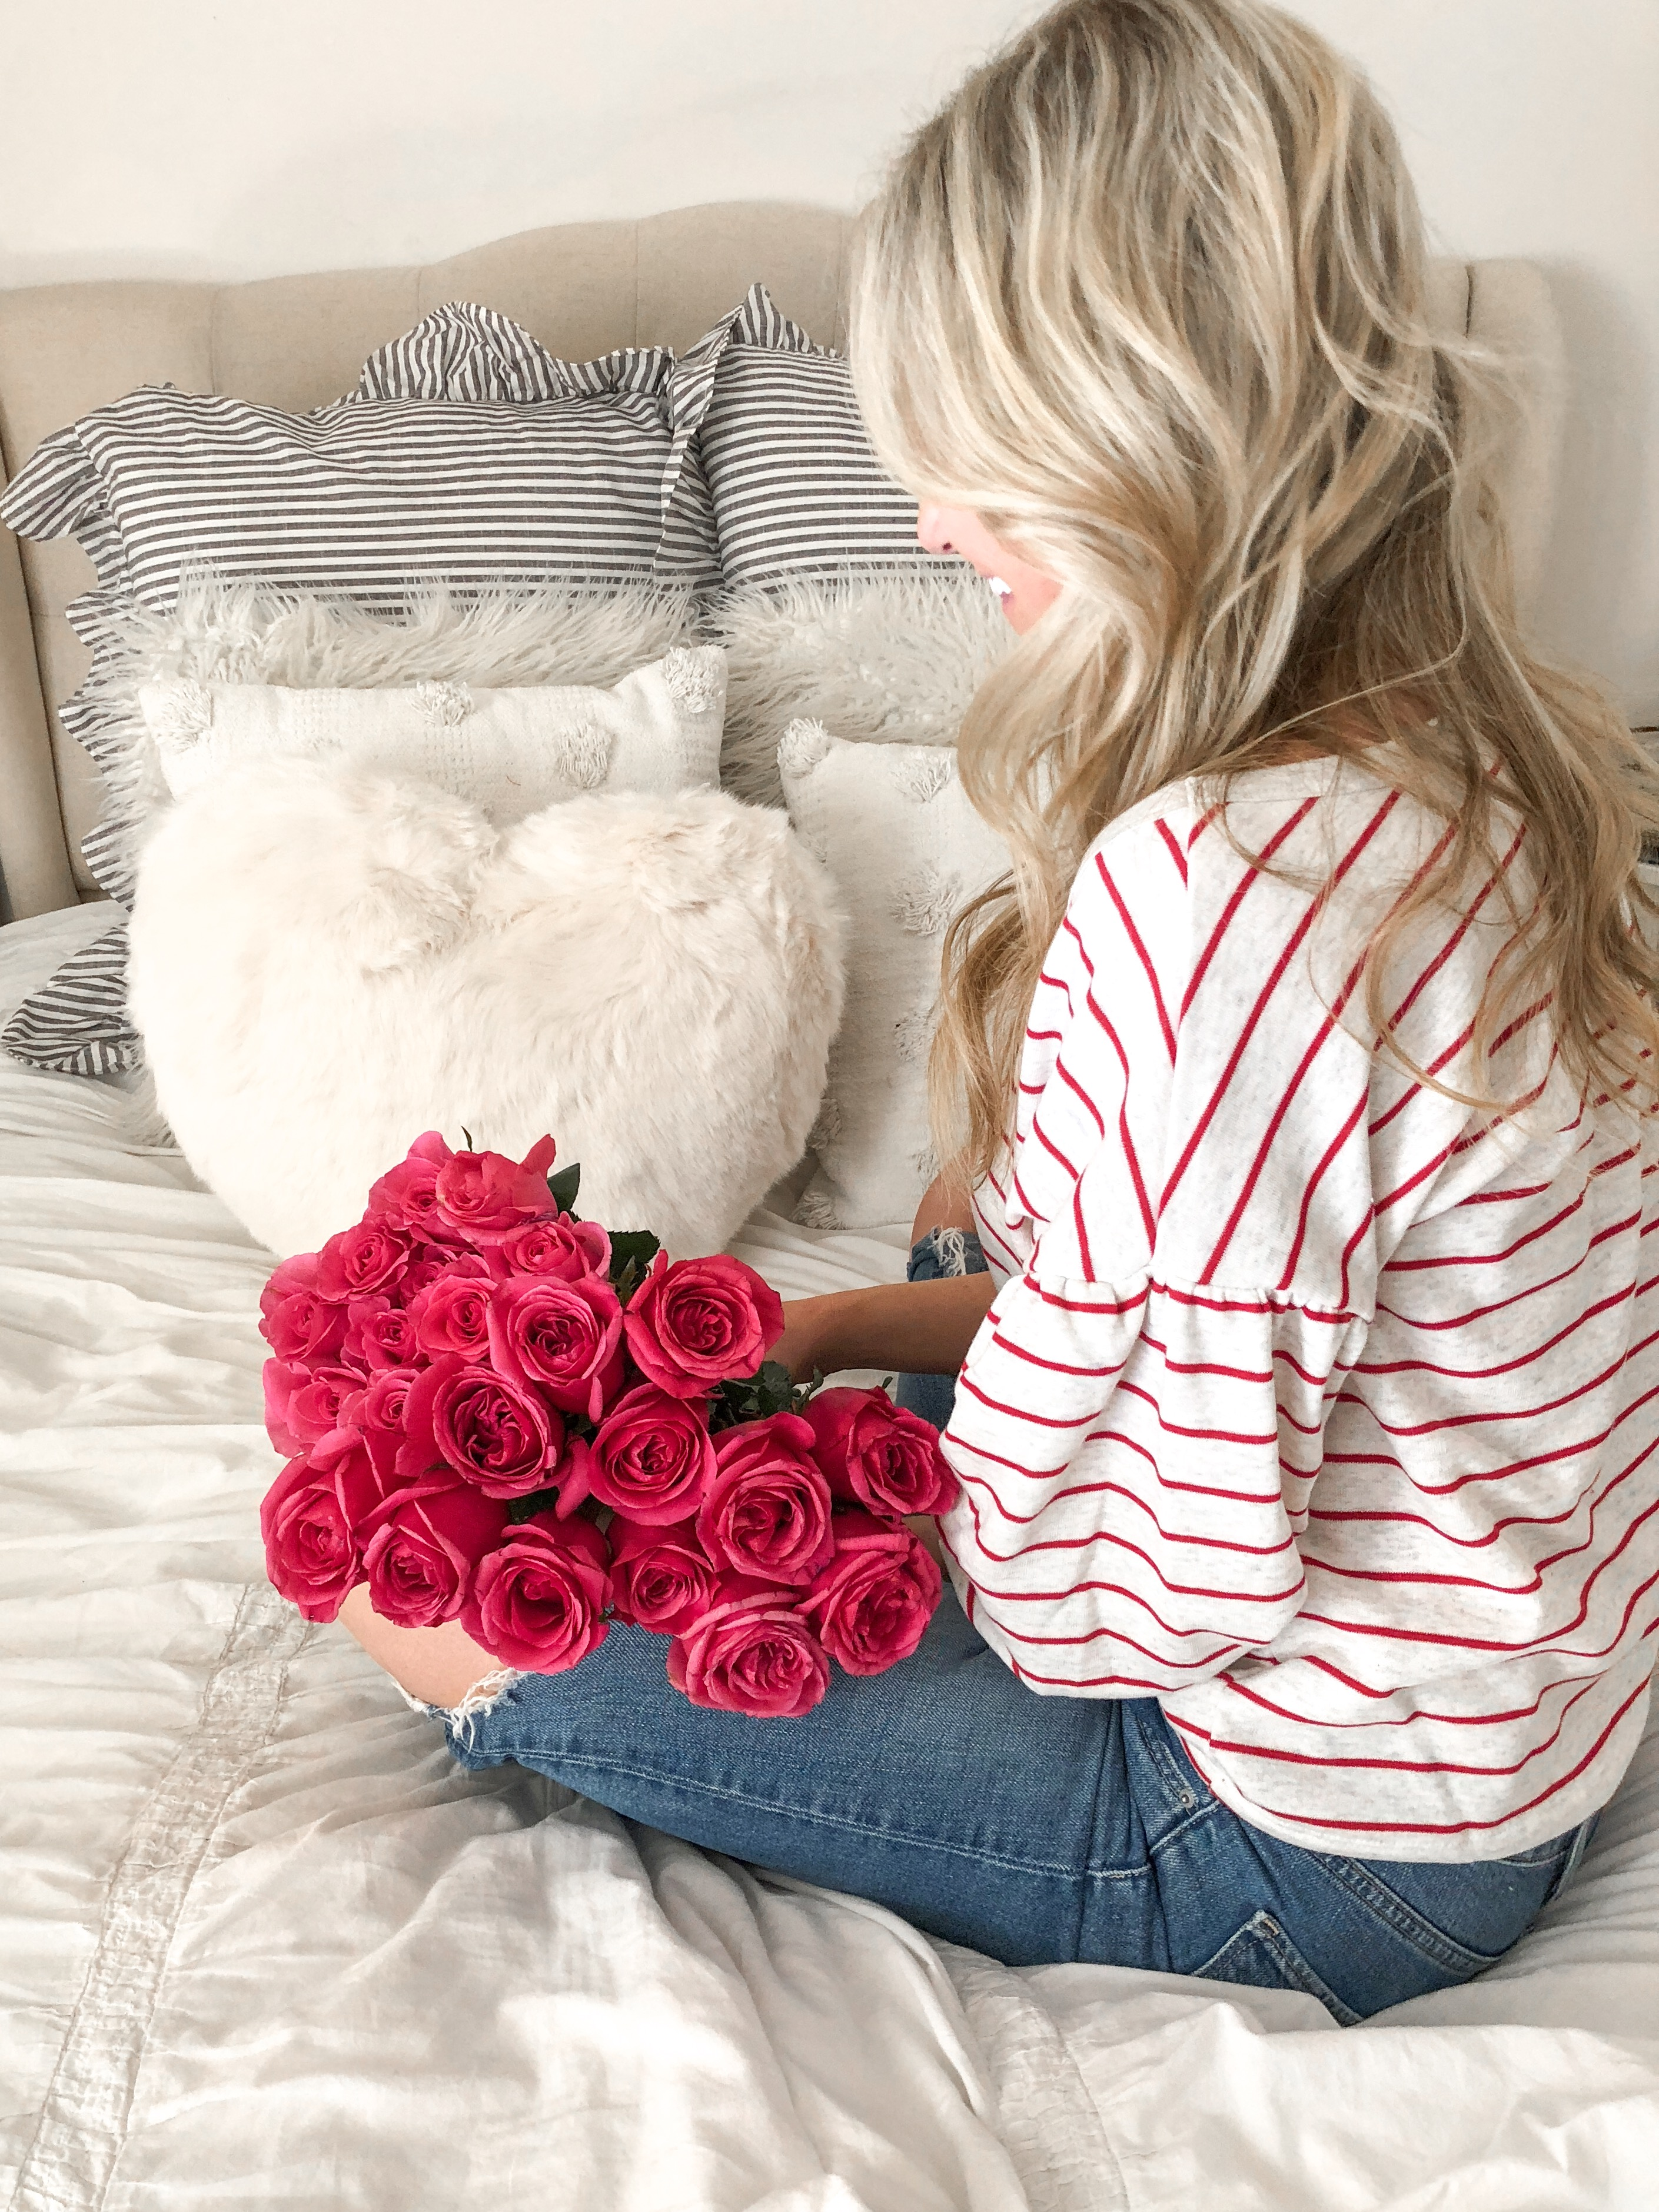 Best Of Valentine S Day Gifts For Him Her Including Non